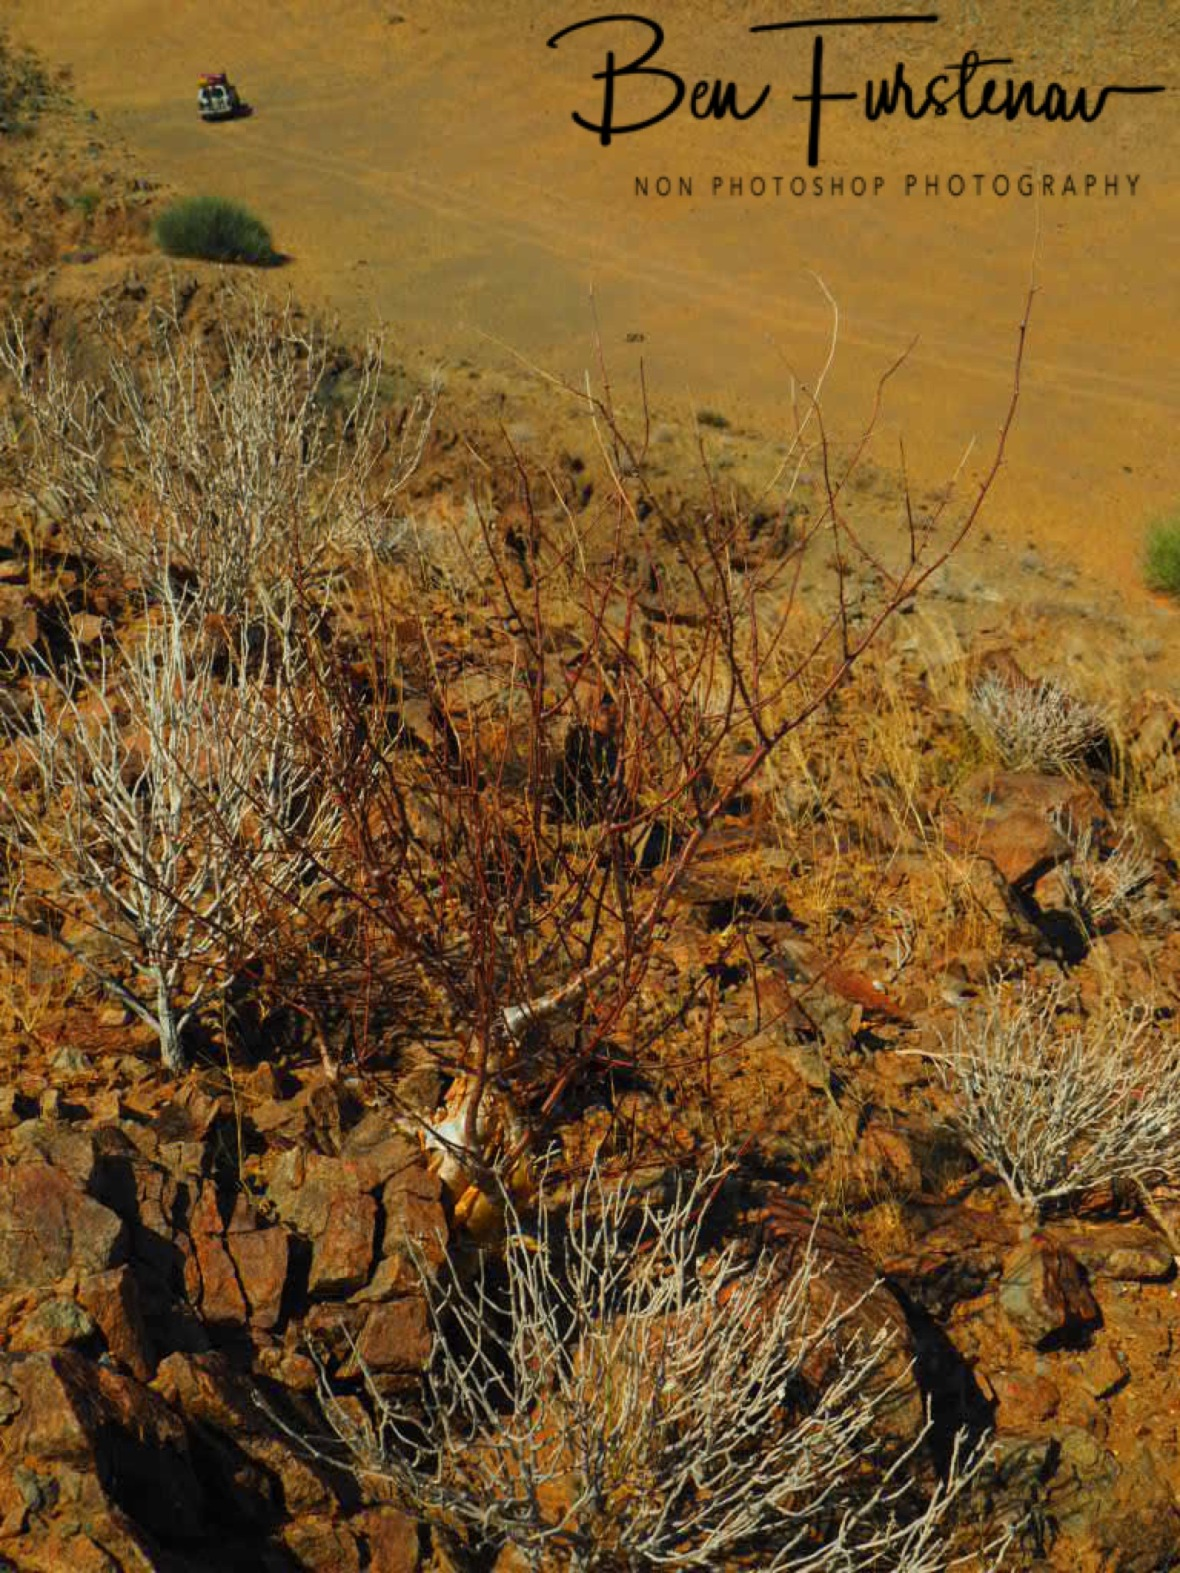 Zimba parked in the distance, Damaraland, Namibia